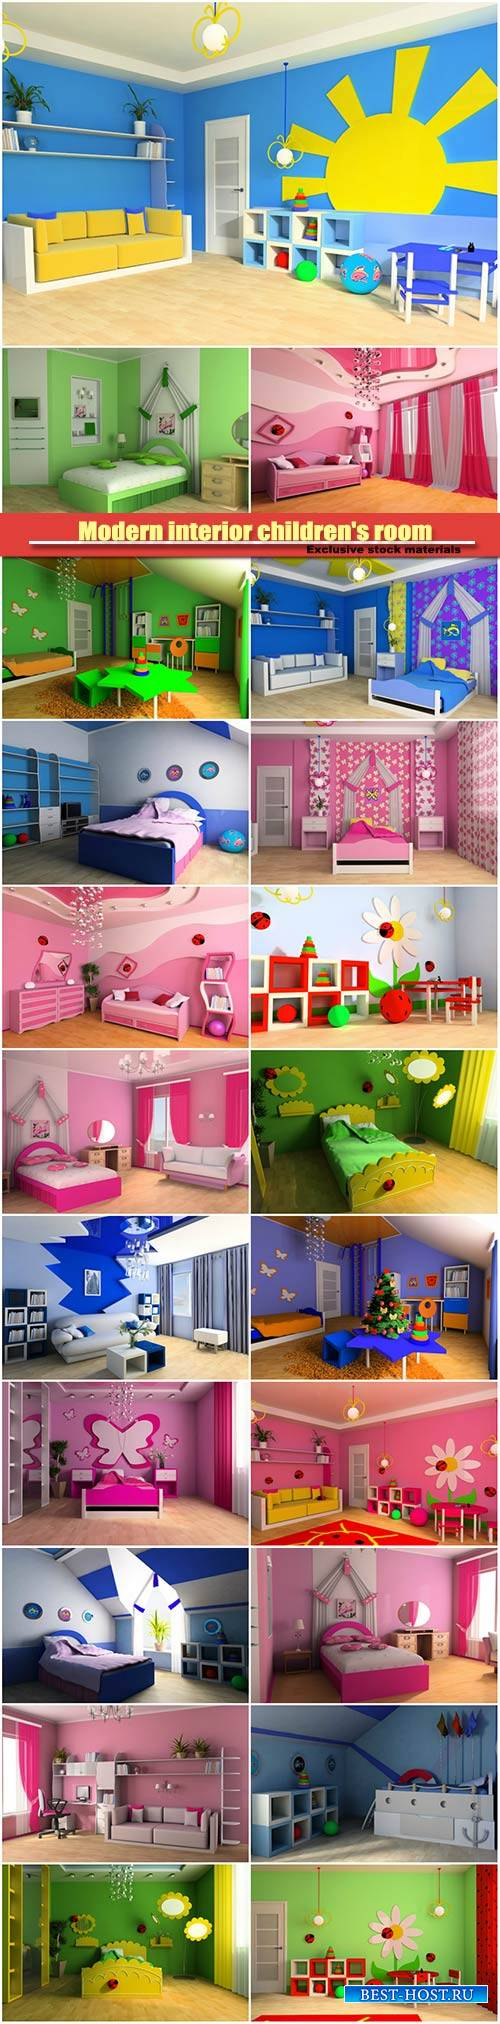 Modern interior children's room